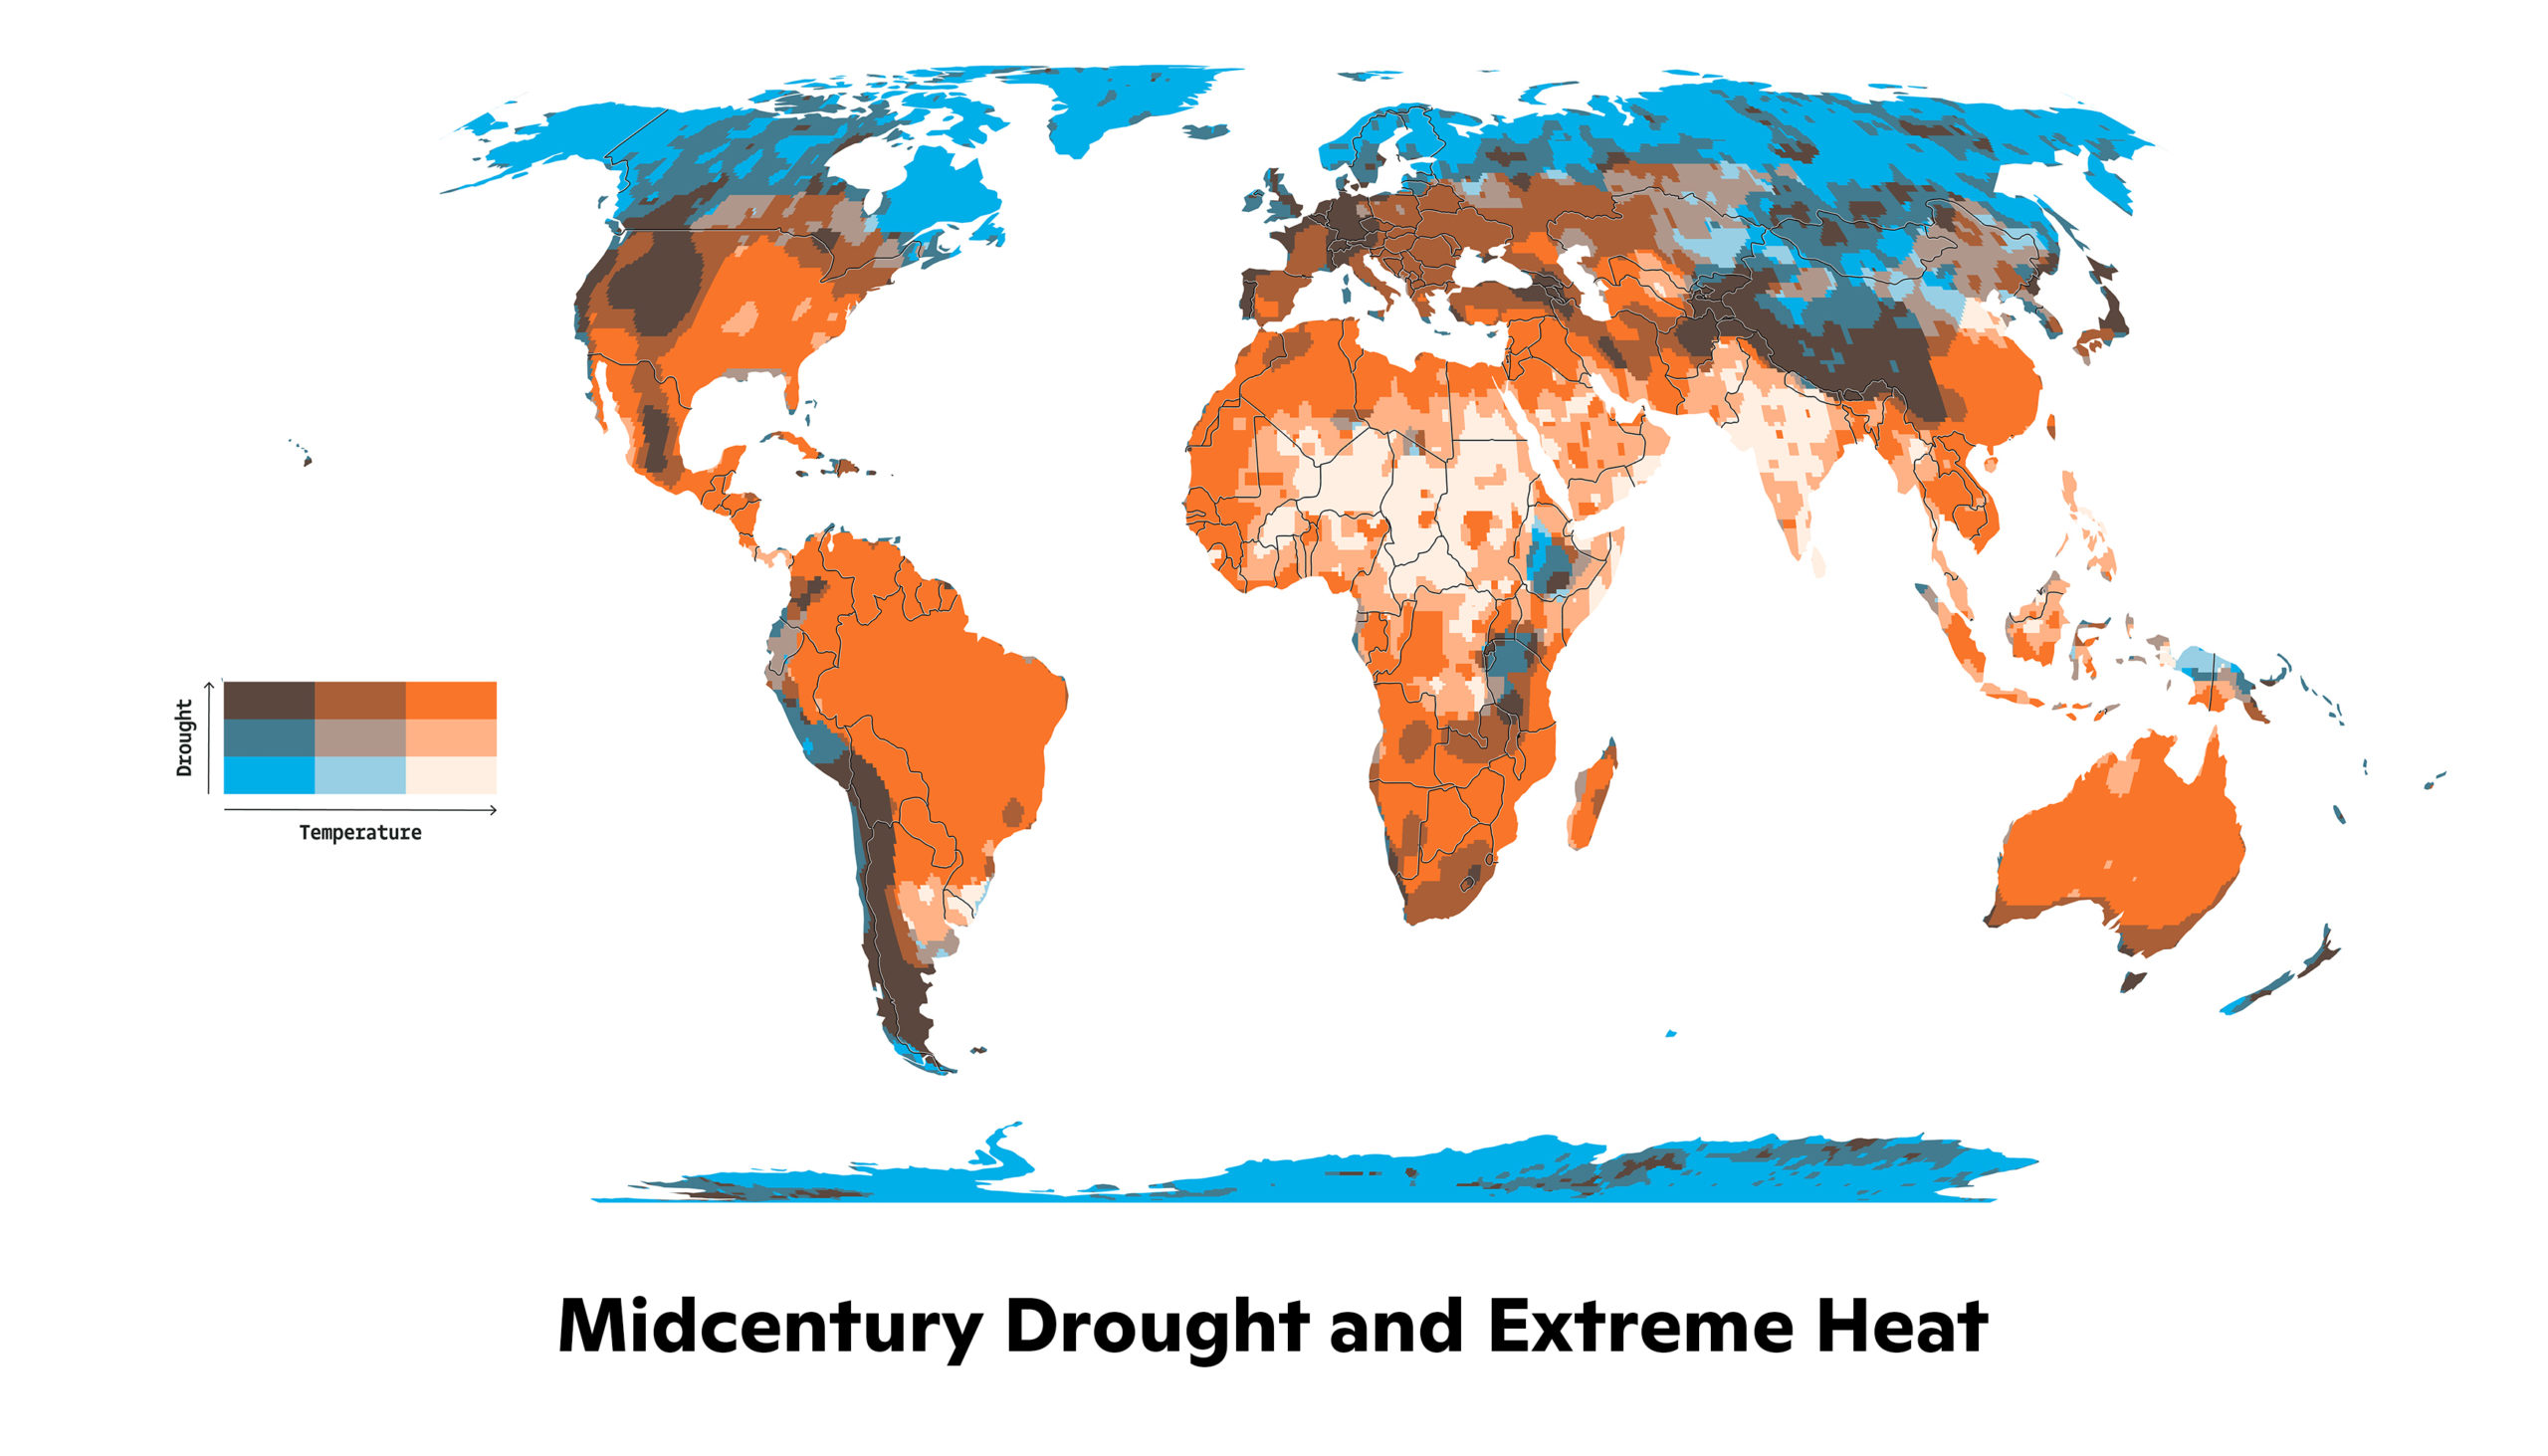 midcentury drought and extreme heat map